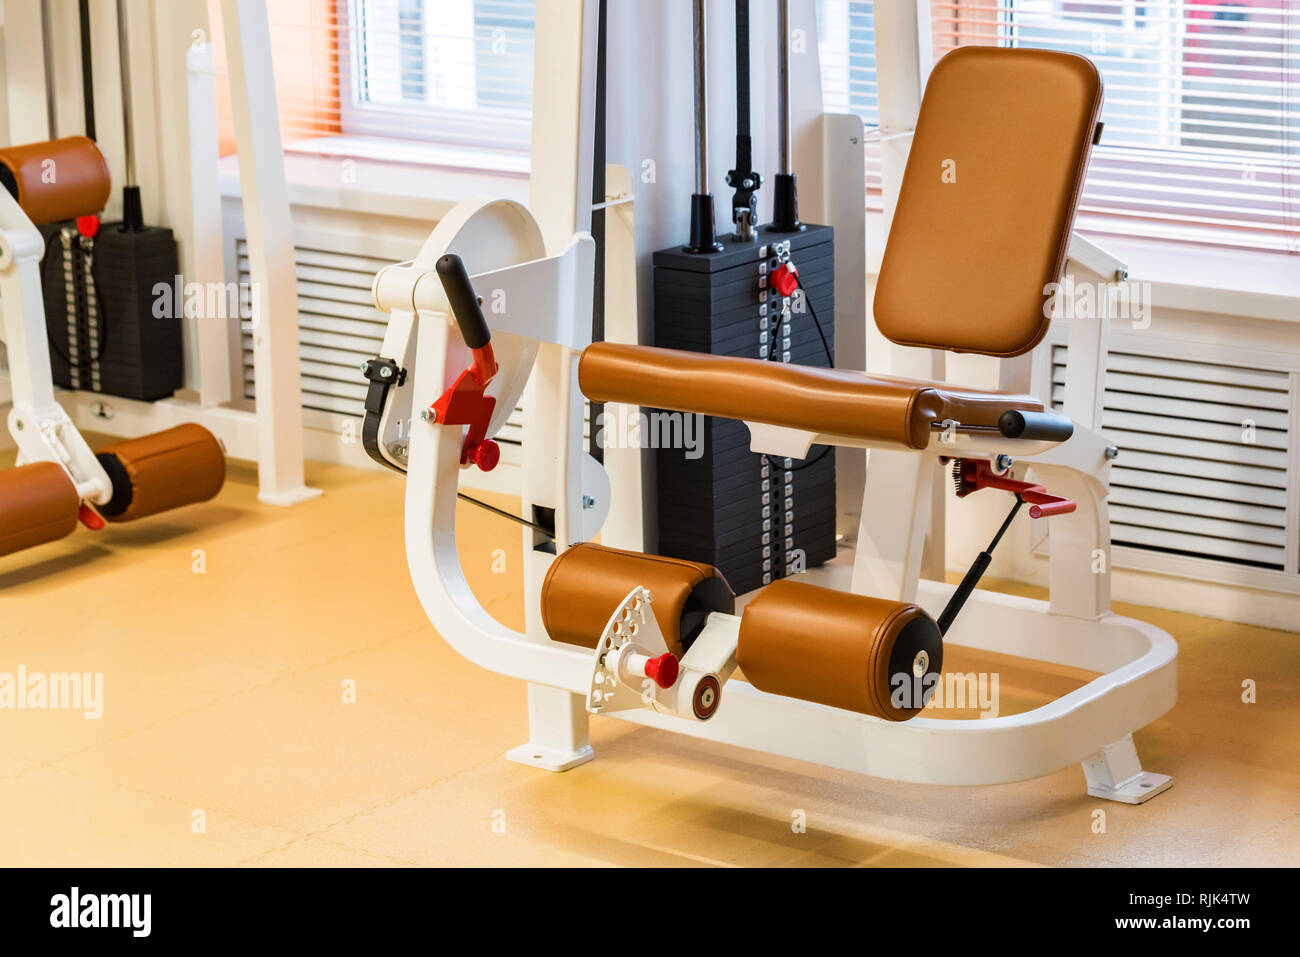 Empty leg extension exercise machine in modern gym - Stock Image